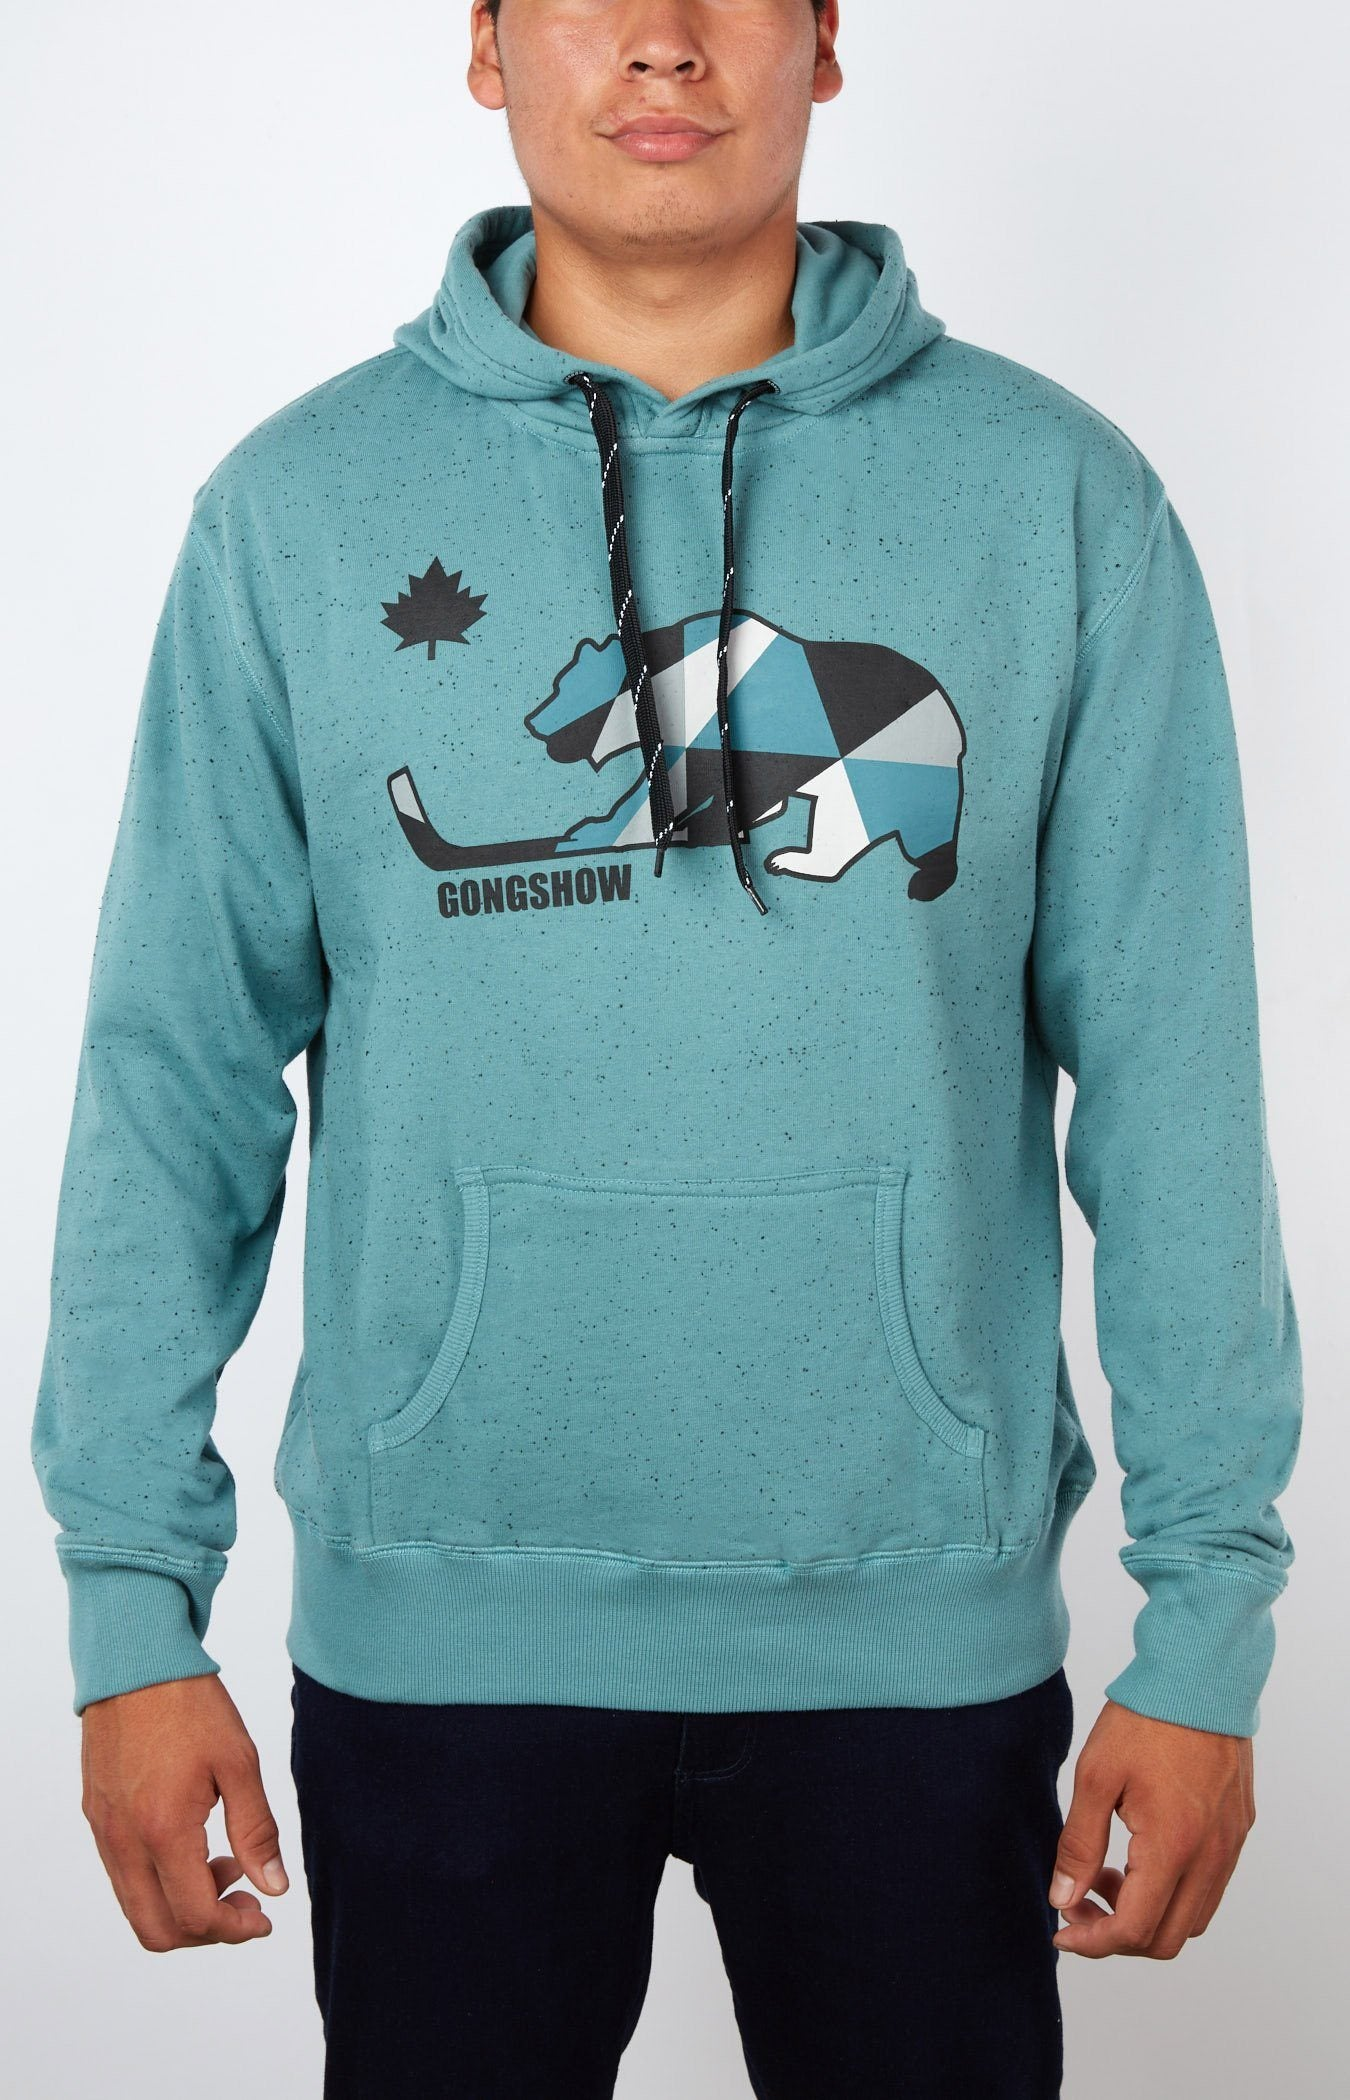 Steer Clear Teal Green Long Sleeve Hooded Sweatshirt Mens GONGSHOW Hockey  Hoody – GONGSHOW USA 08dcbddf51650